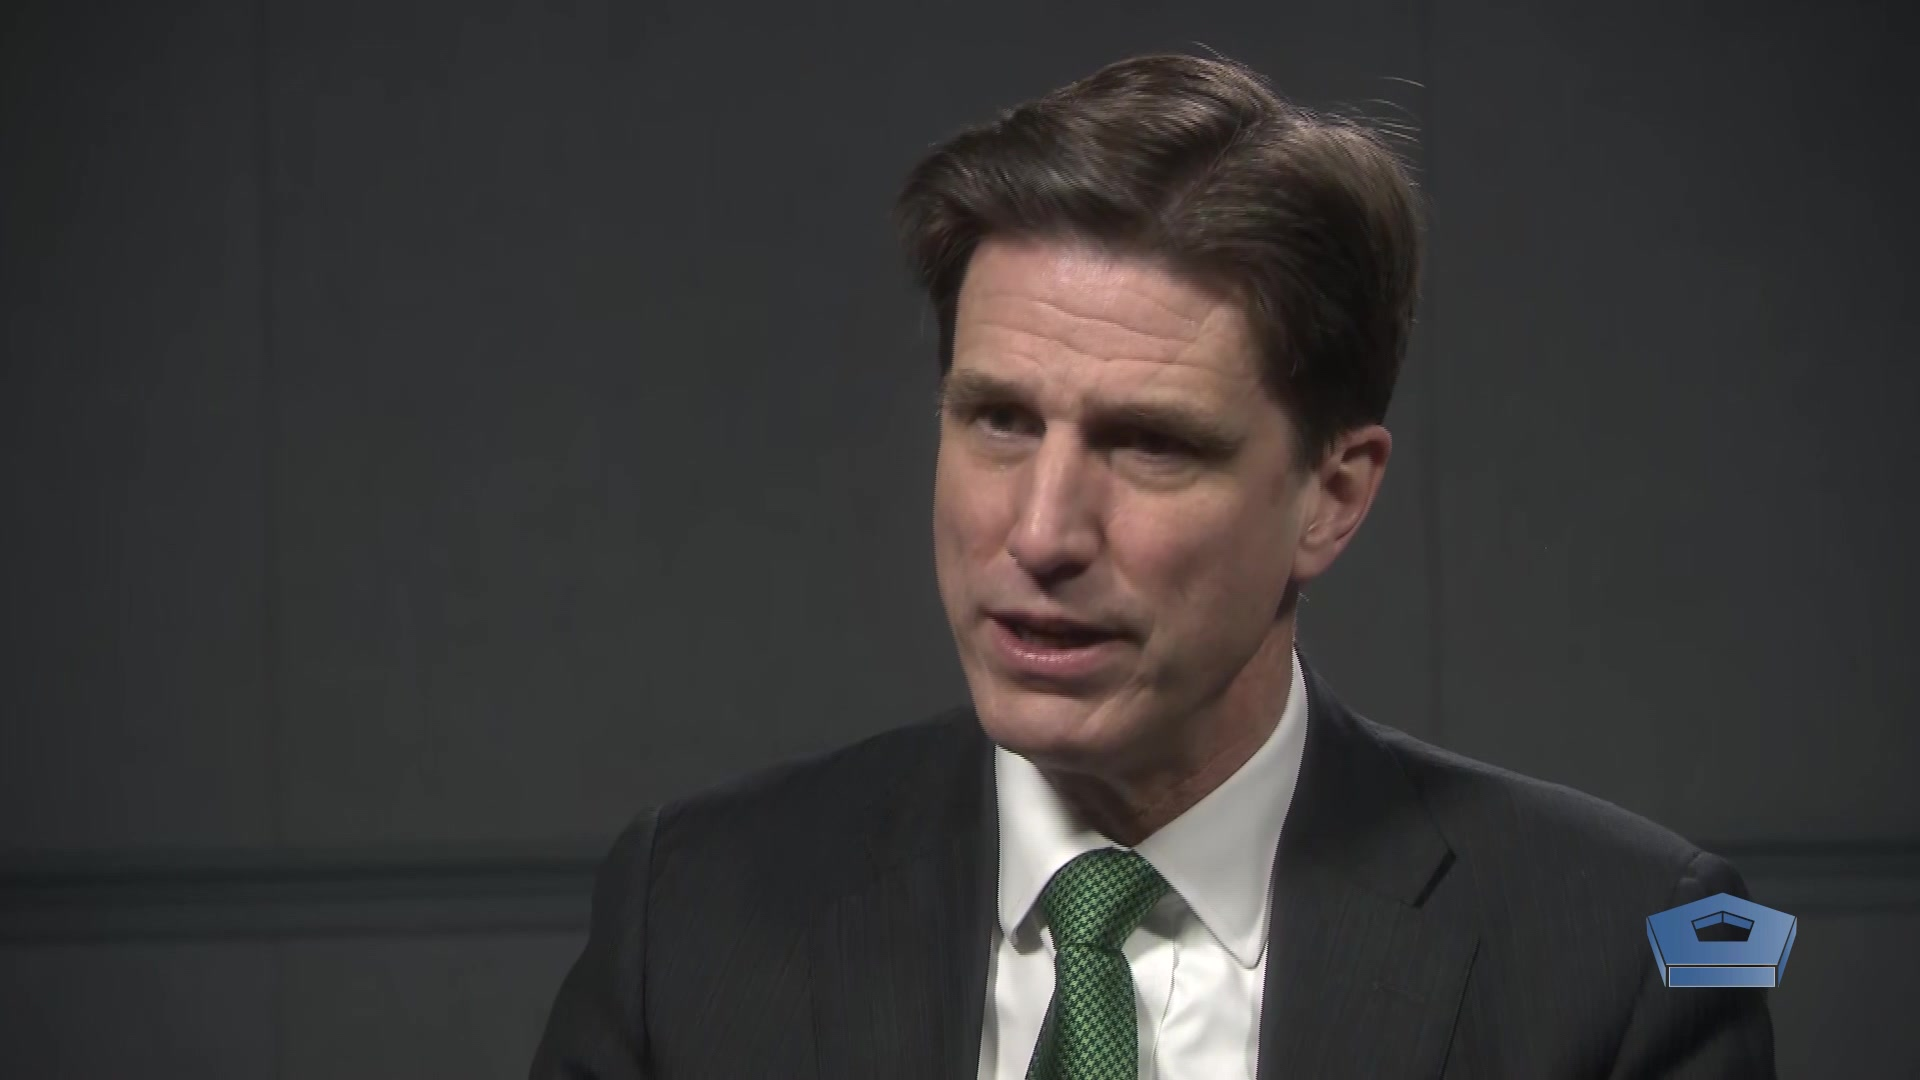 Dana Deasy, DOD's chief information officer, talks about the DOD Cloud Initiative and what it means for today's warfighter.